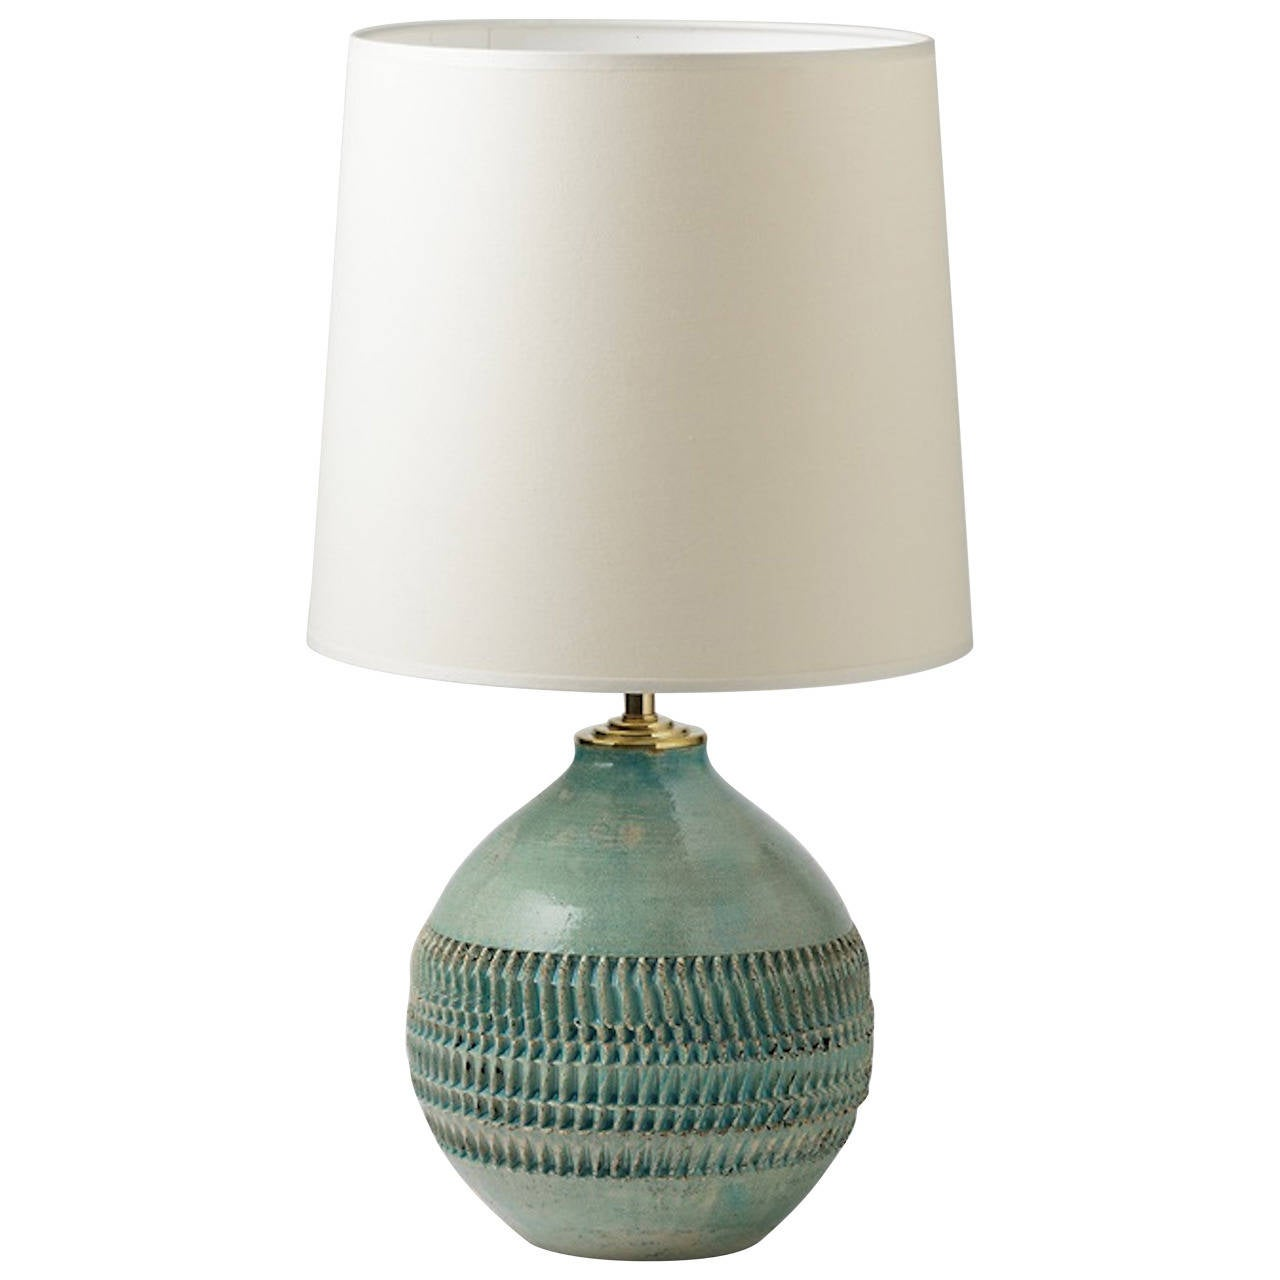 Elegant Turquoise Blue Ceramic Lamp by Dubray, circa 1930-1940 at ...